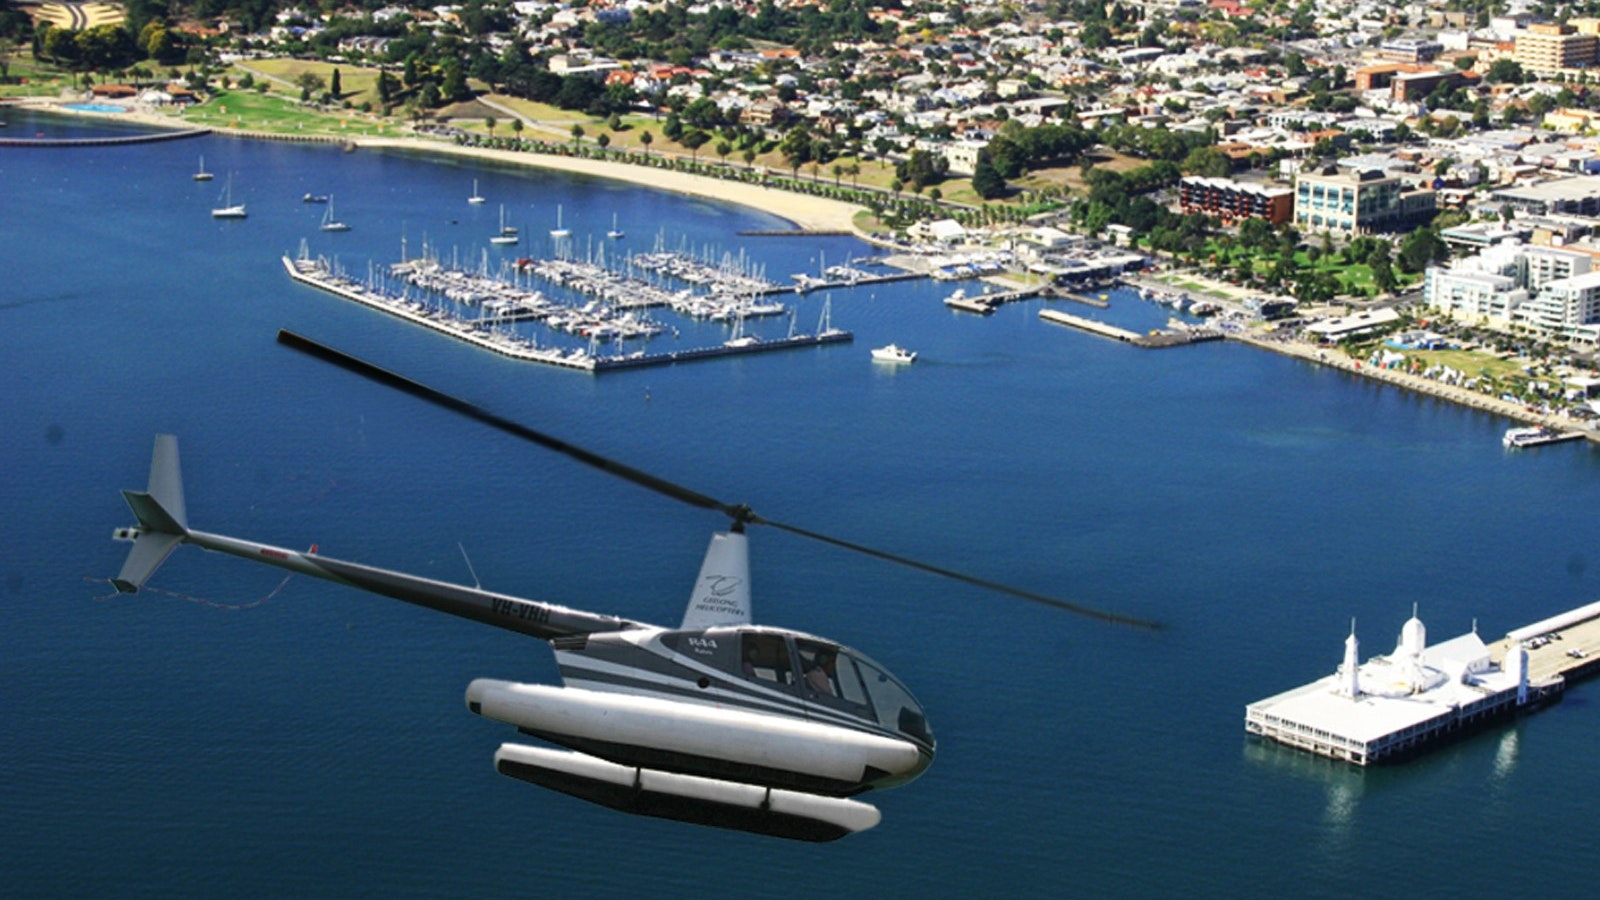 scenic helicopter flights melbourne with Geelong Helicopters on Experiences Scenic Flights in addition Kangaroo Island Helicopter Rides as well History And Heritage besides Contact Us besides Penguins.